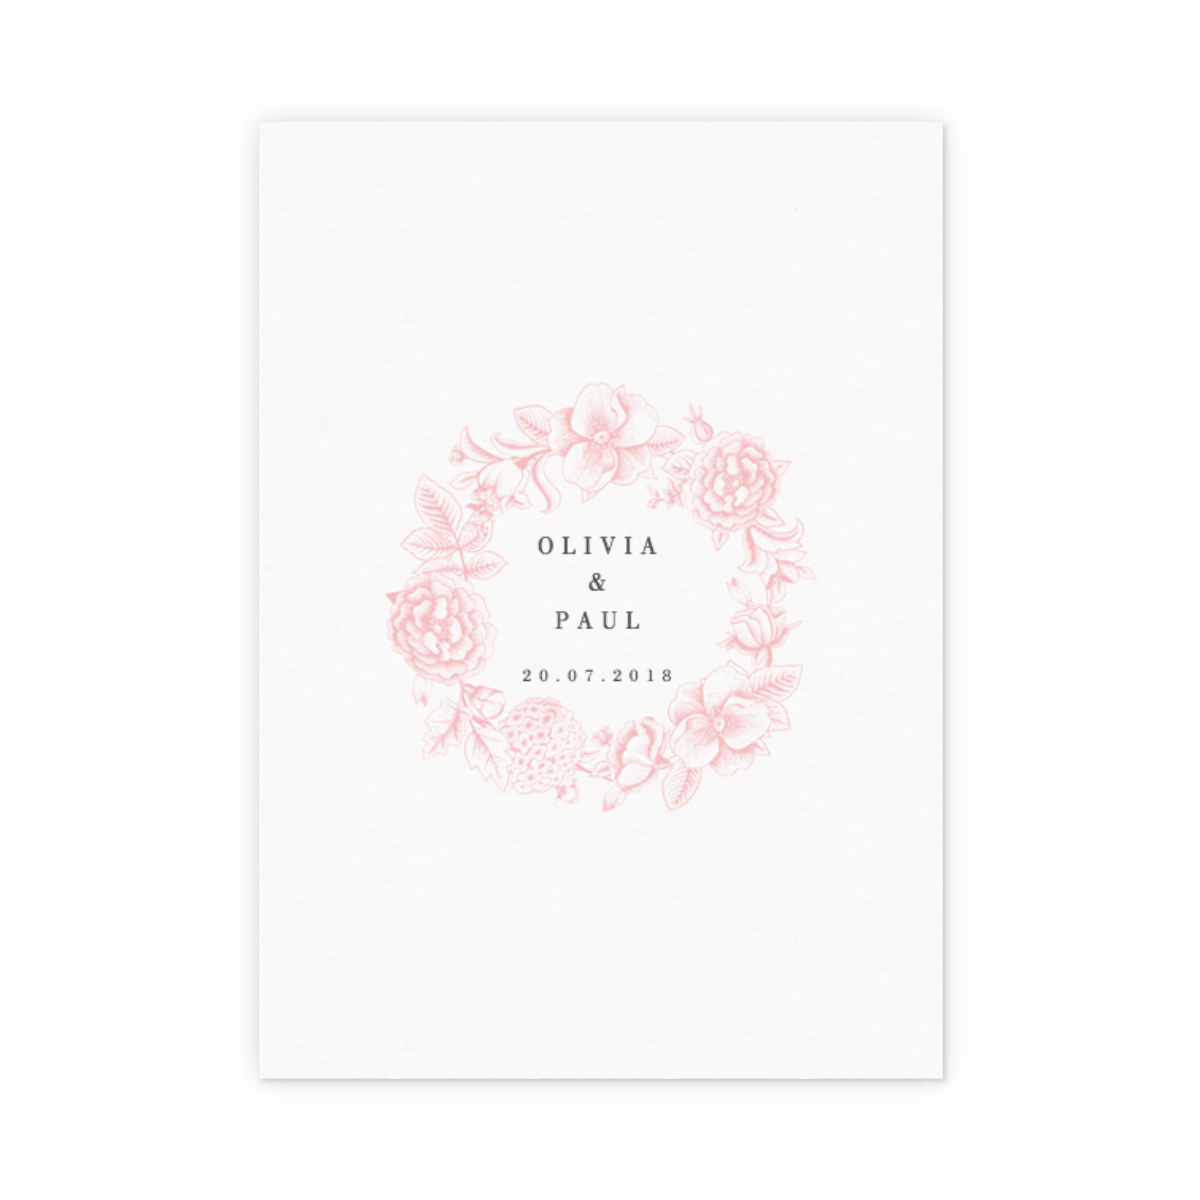 Https%3a%2f%2fwww.papier.com%2fproduct image%2f26608%2f4%2fpink hydrangea 6666 arriere 1534781327.png?ixlib=rb 1.1